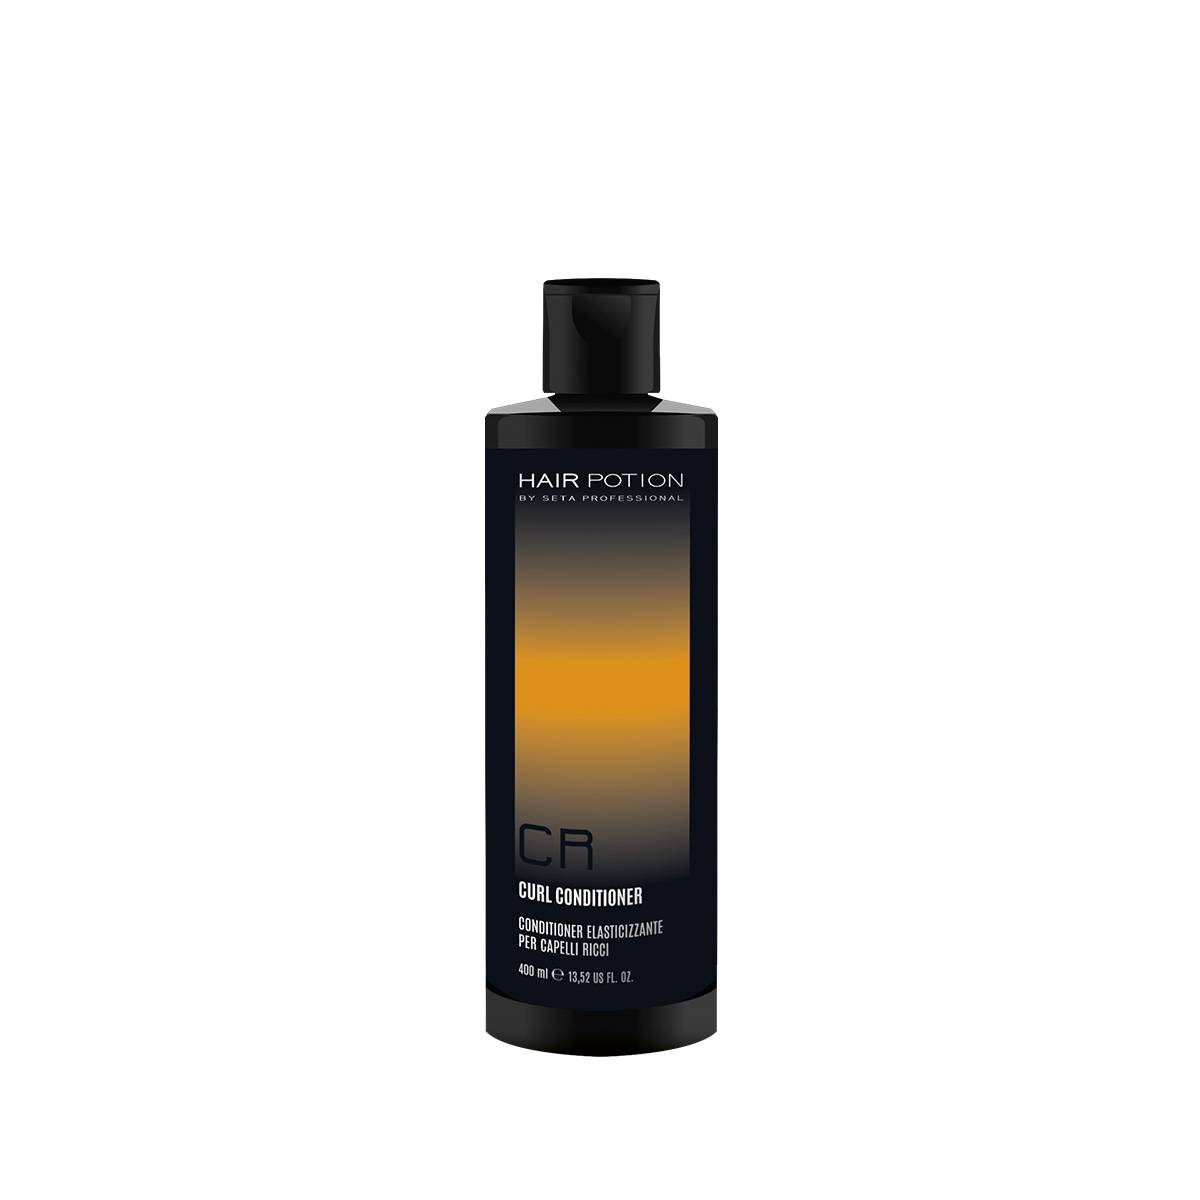 Hair Potion Pro Curl Conditioner 400ml